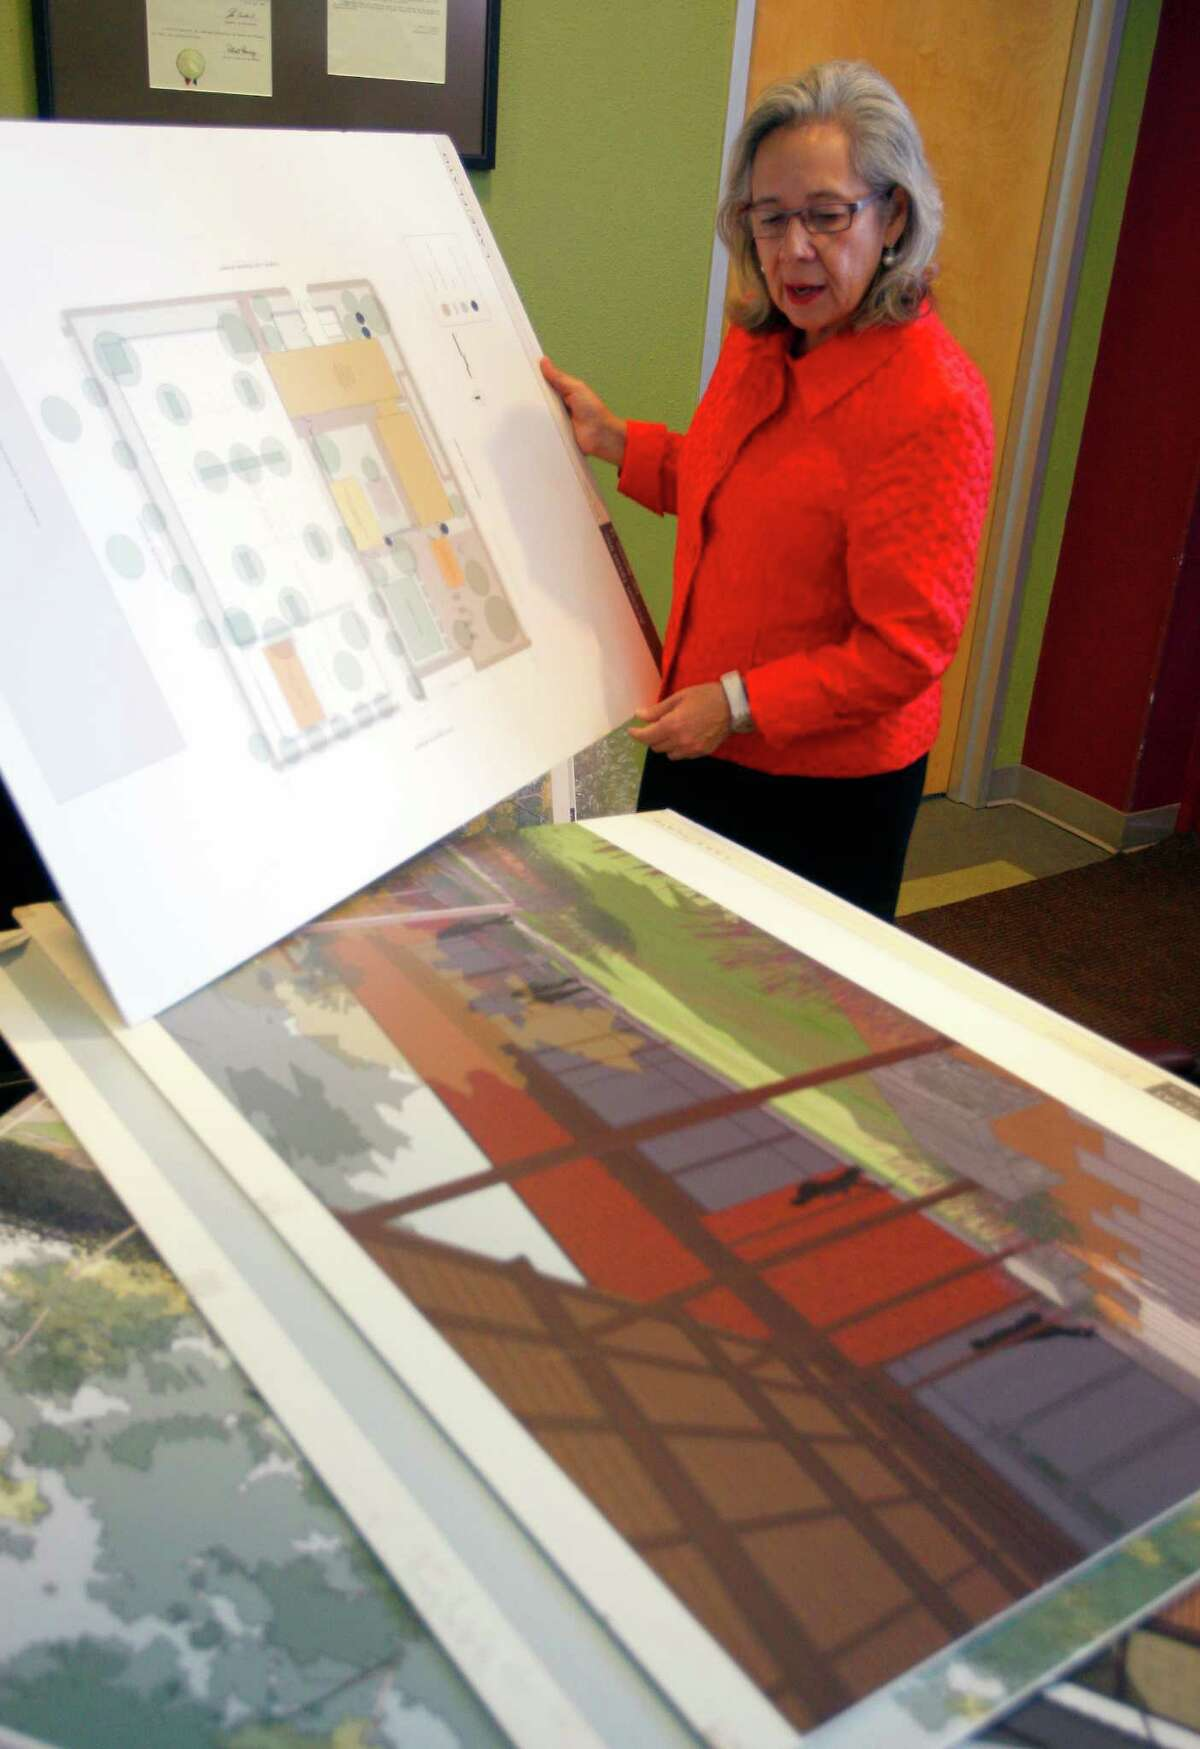 Janie Barrera, CEO of Accion Texas, talks Tuesday Nov. 18, 2014, about the organization's pending name change and upcoming move to a new headquarters building as she shows artist renderings of the new facility.